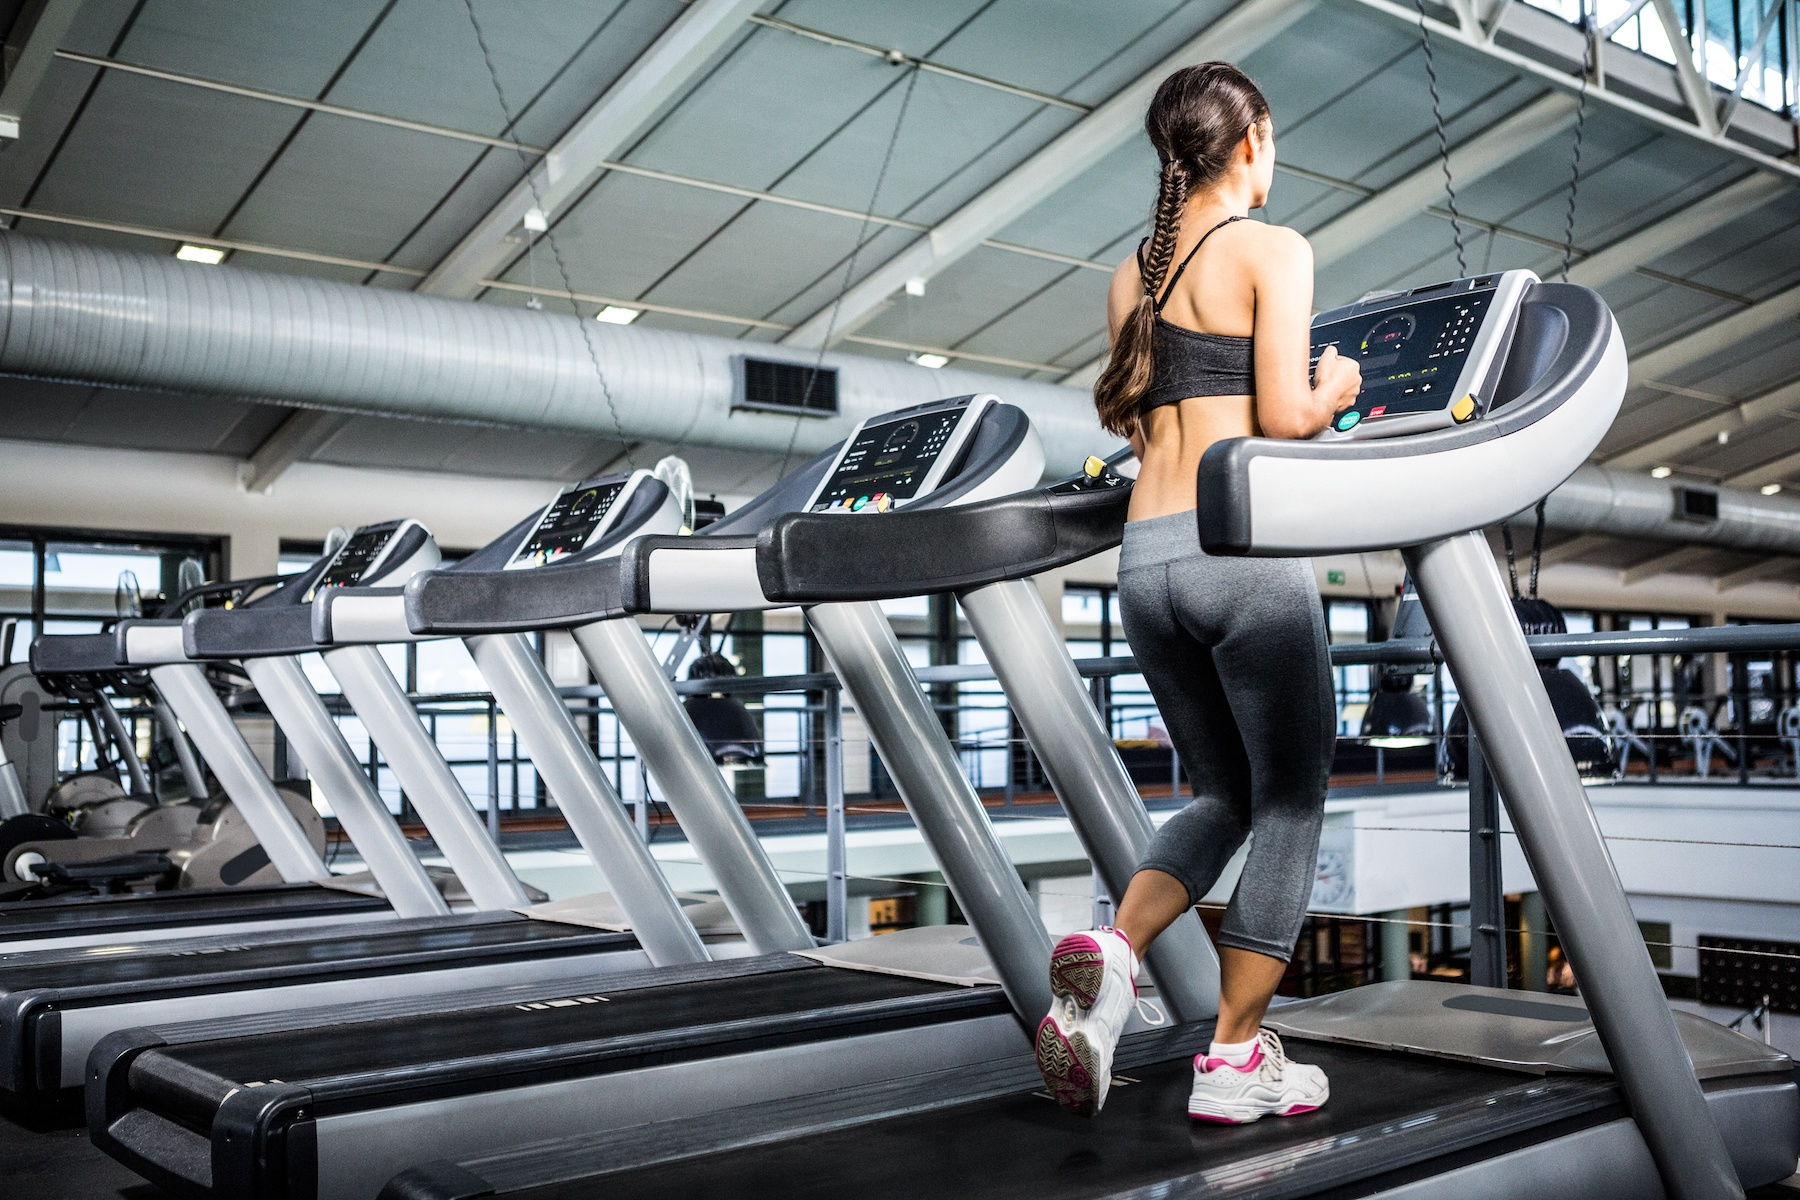 Rear view of woman jogging in treadmill